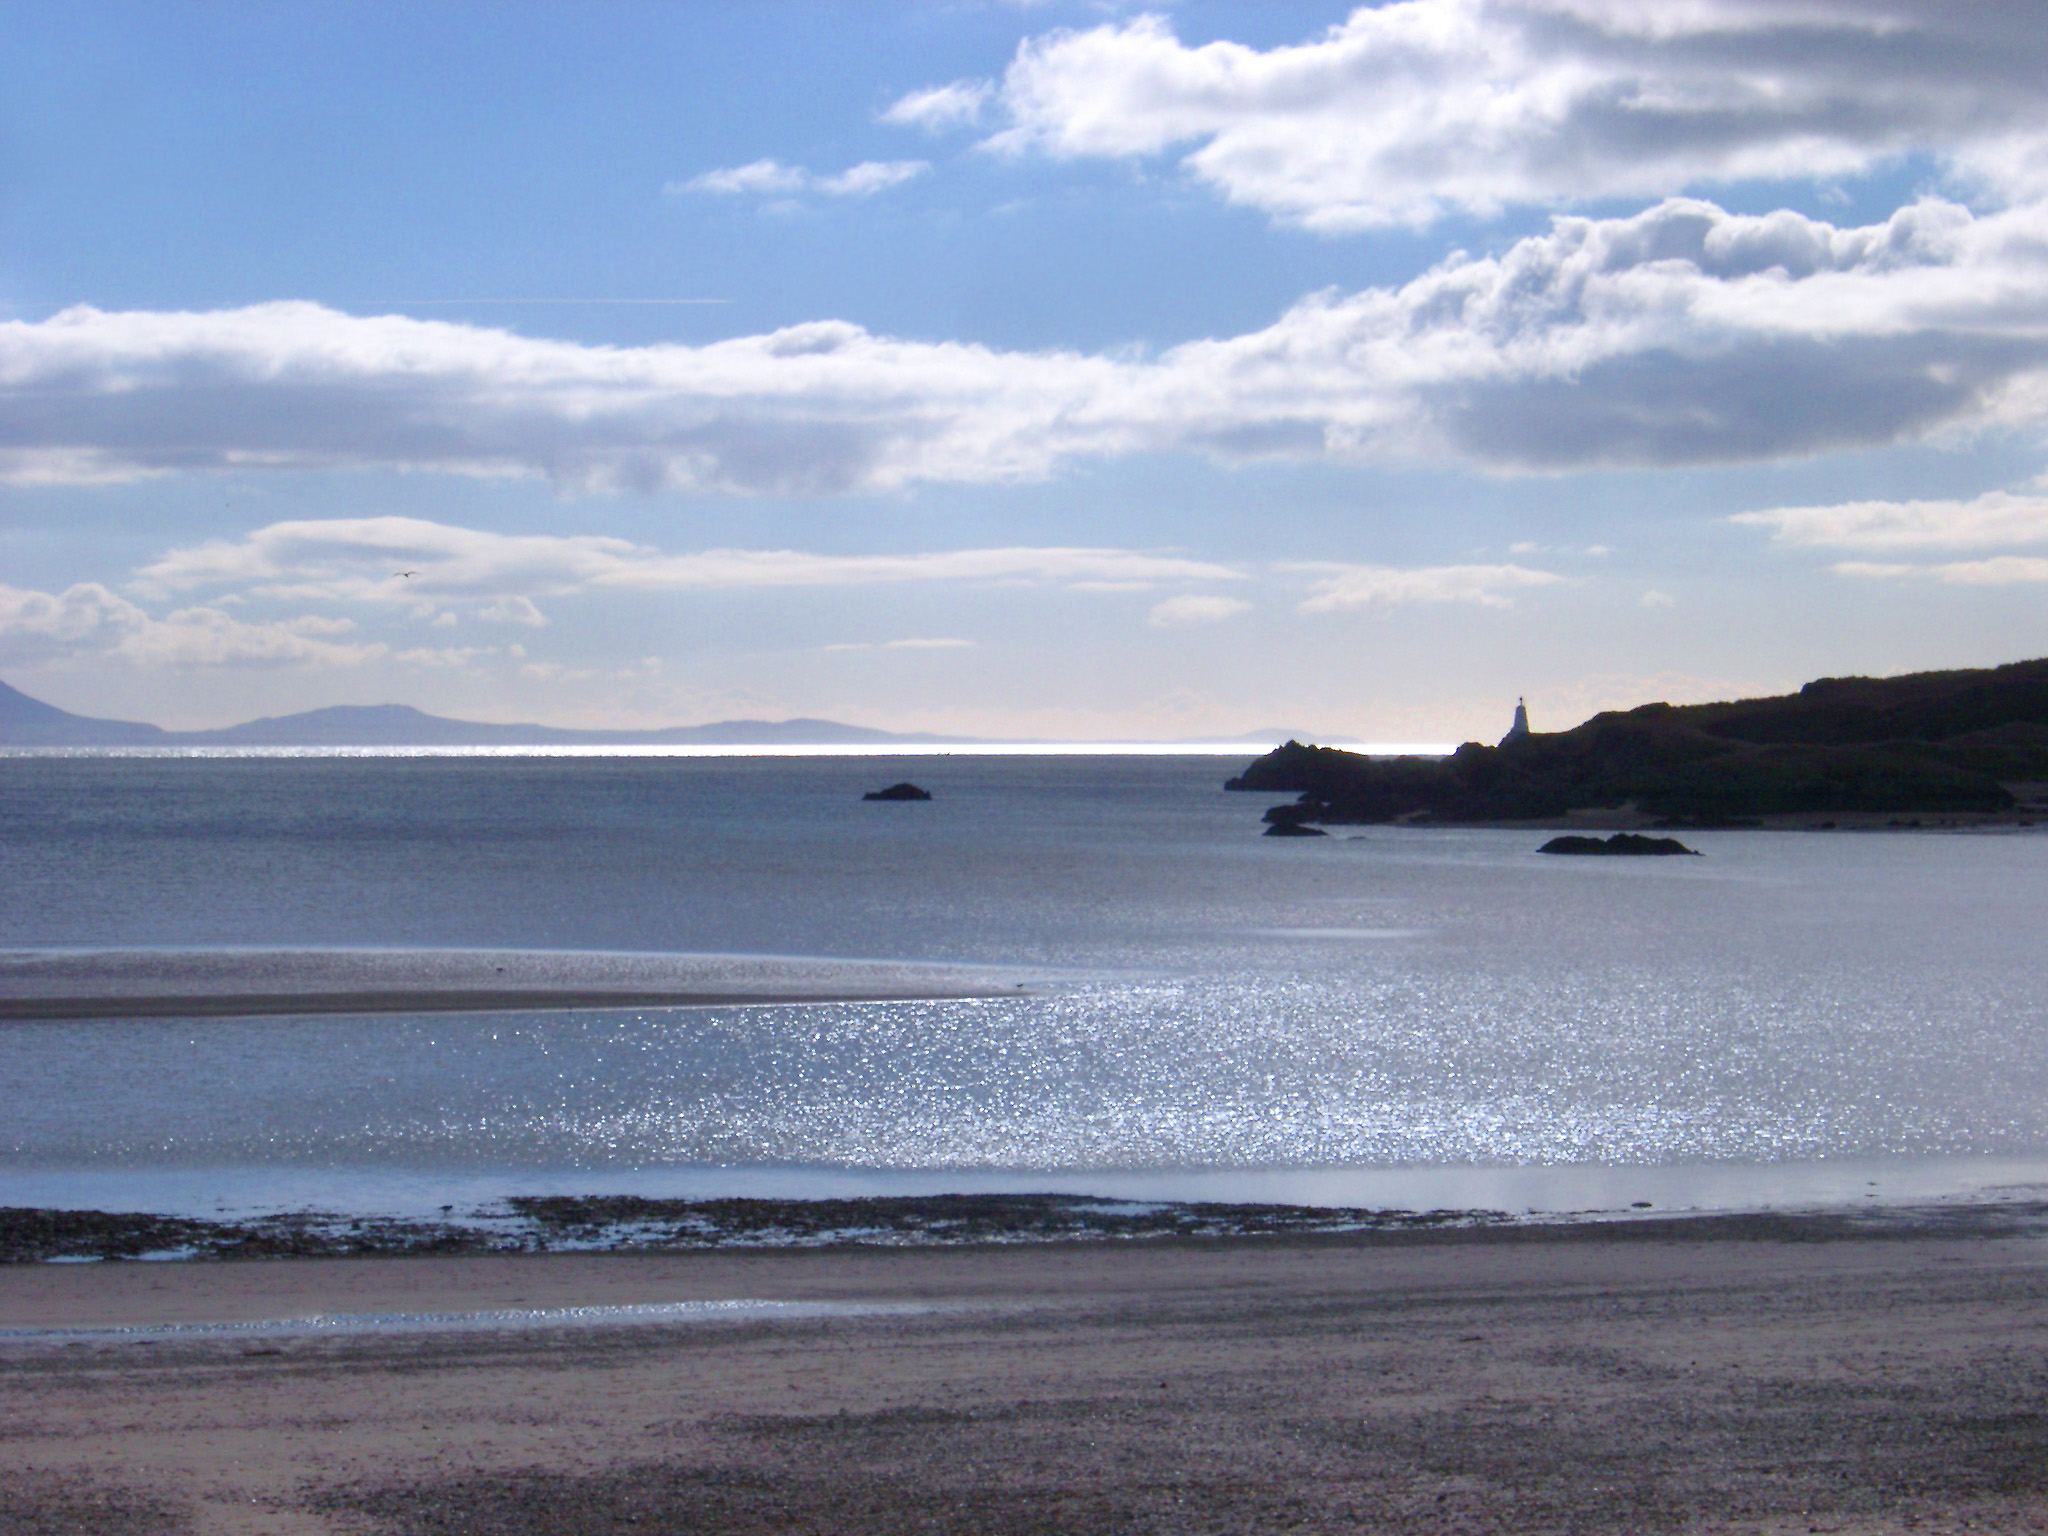 A view to the mainland from Ynys Llanddwn on angelsey, wales.